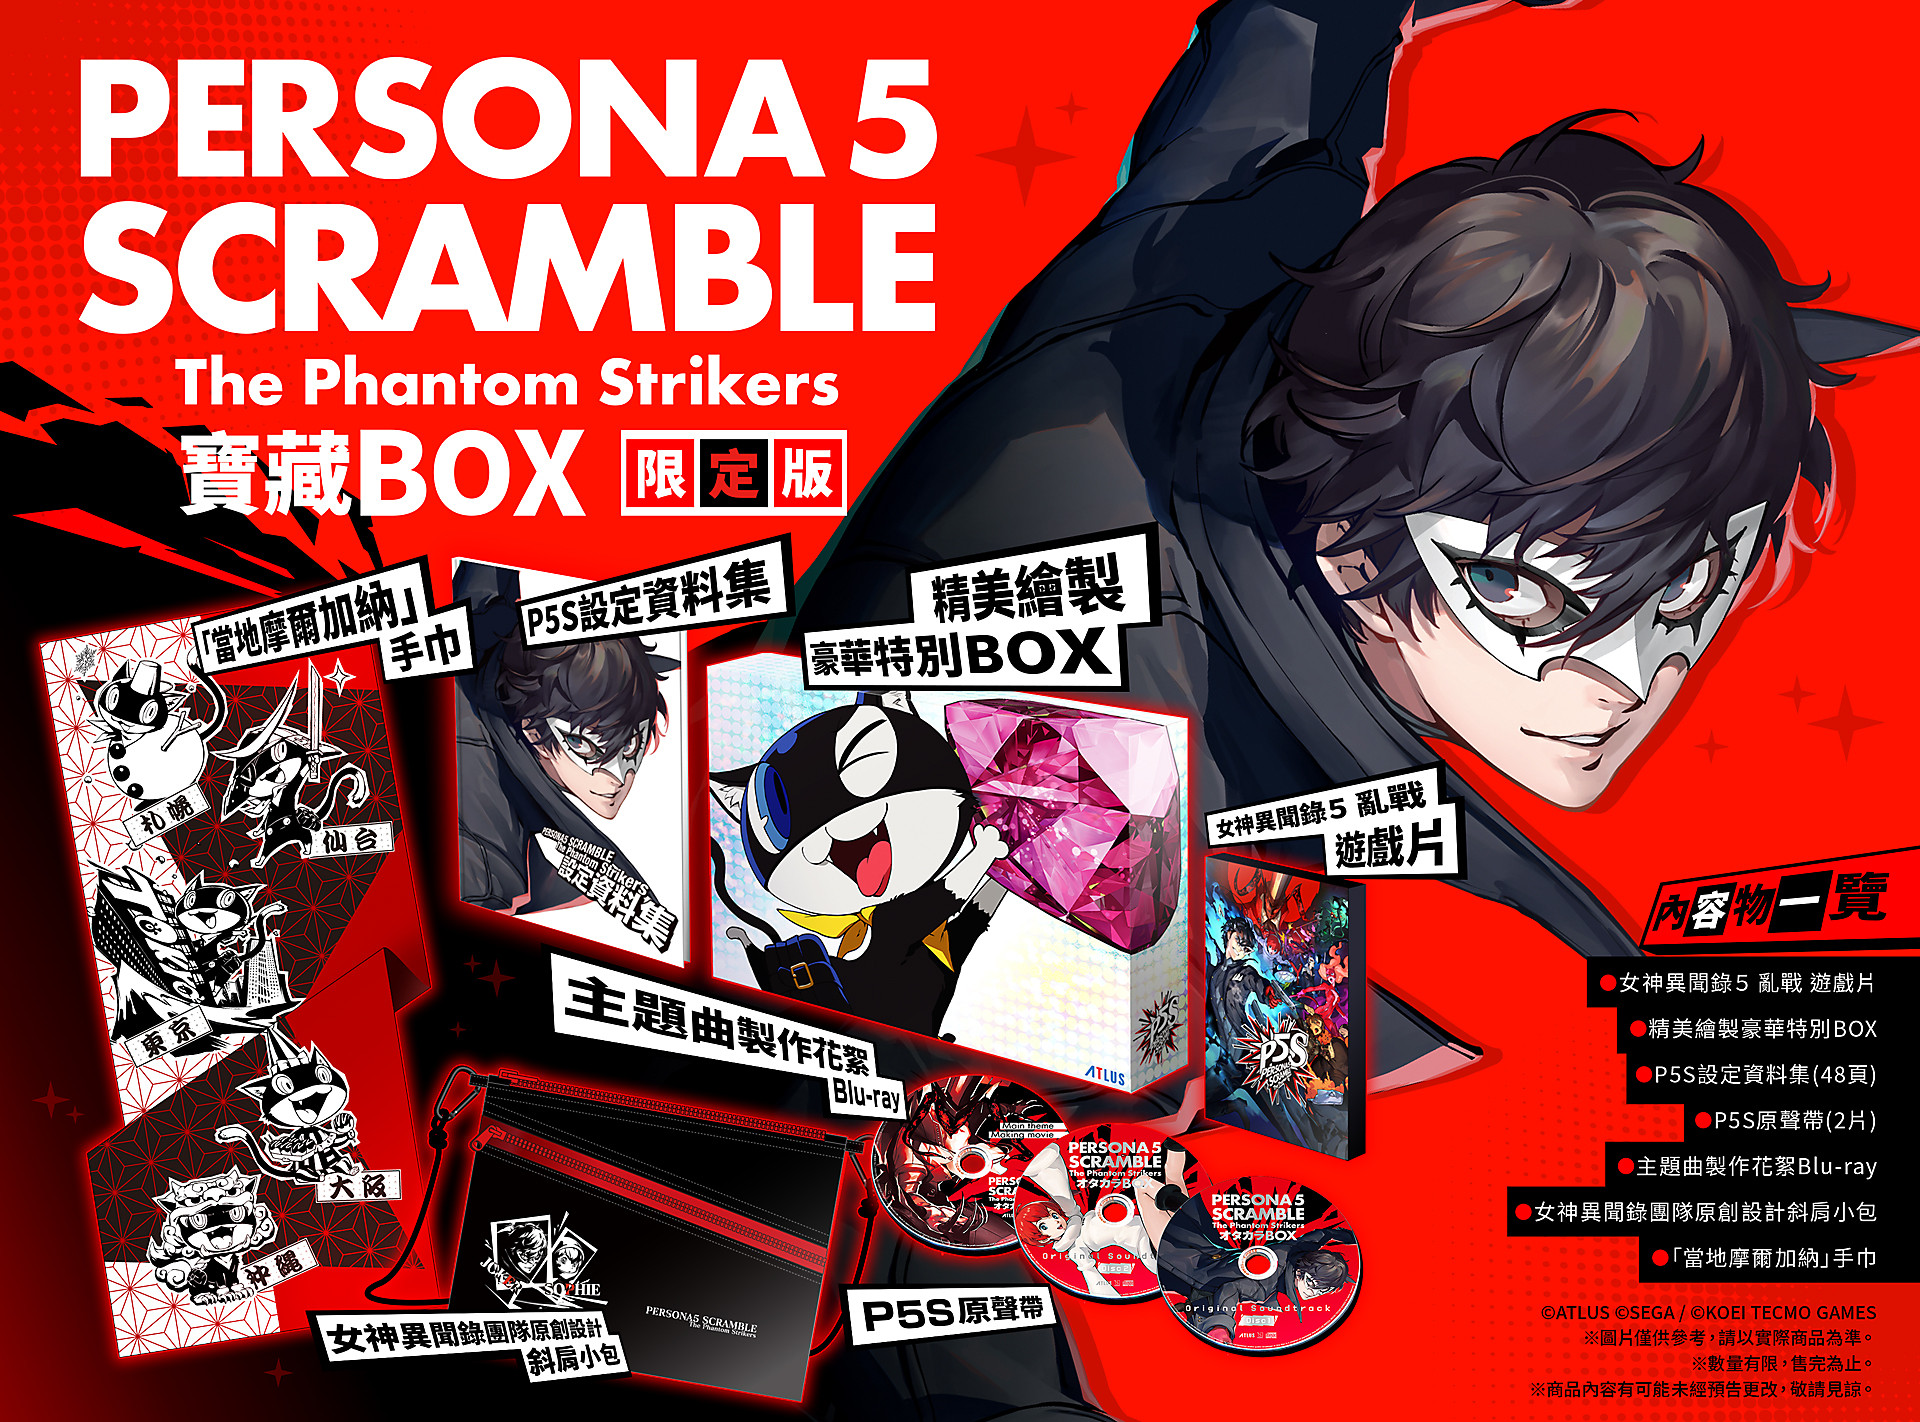 Persona 5 Scramble: The Phantom Strikers Treasure Box Beauty Shot